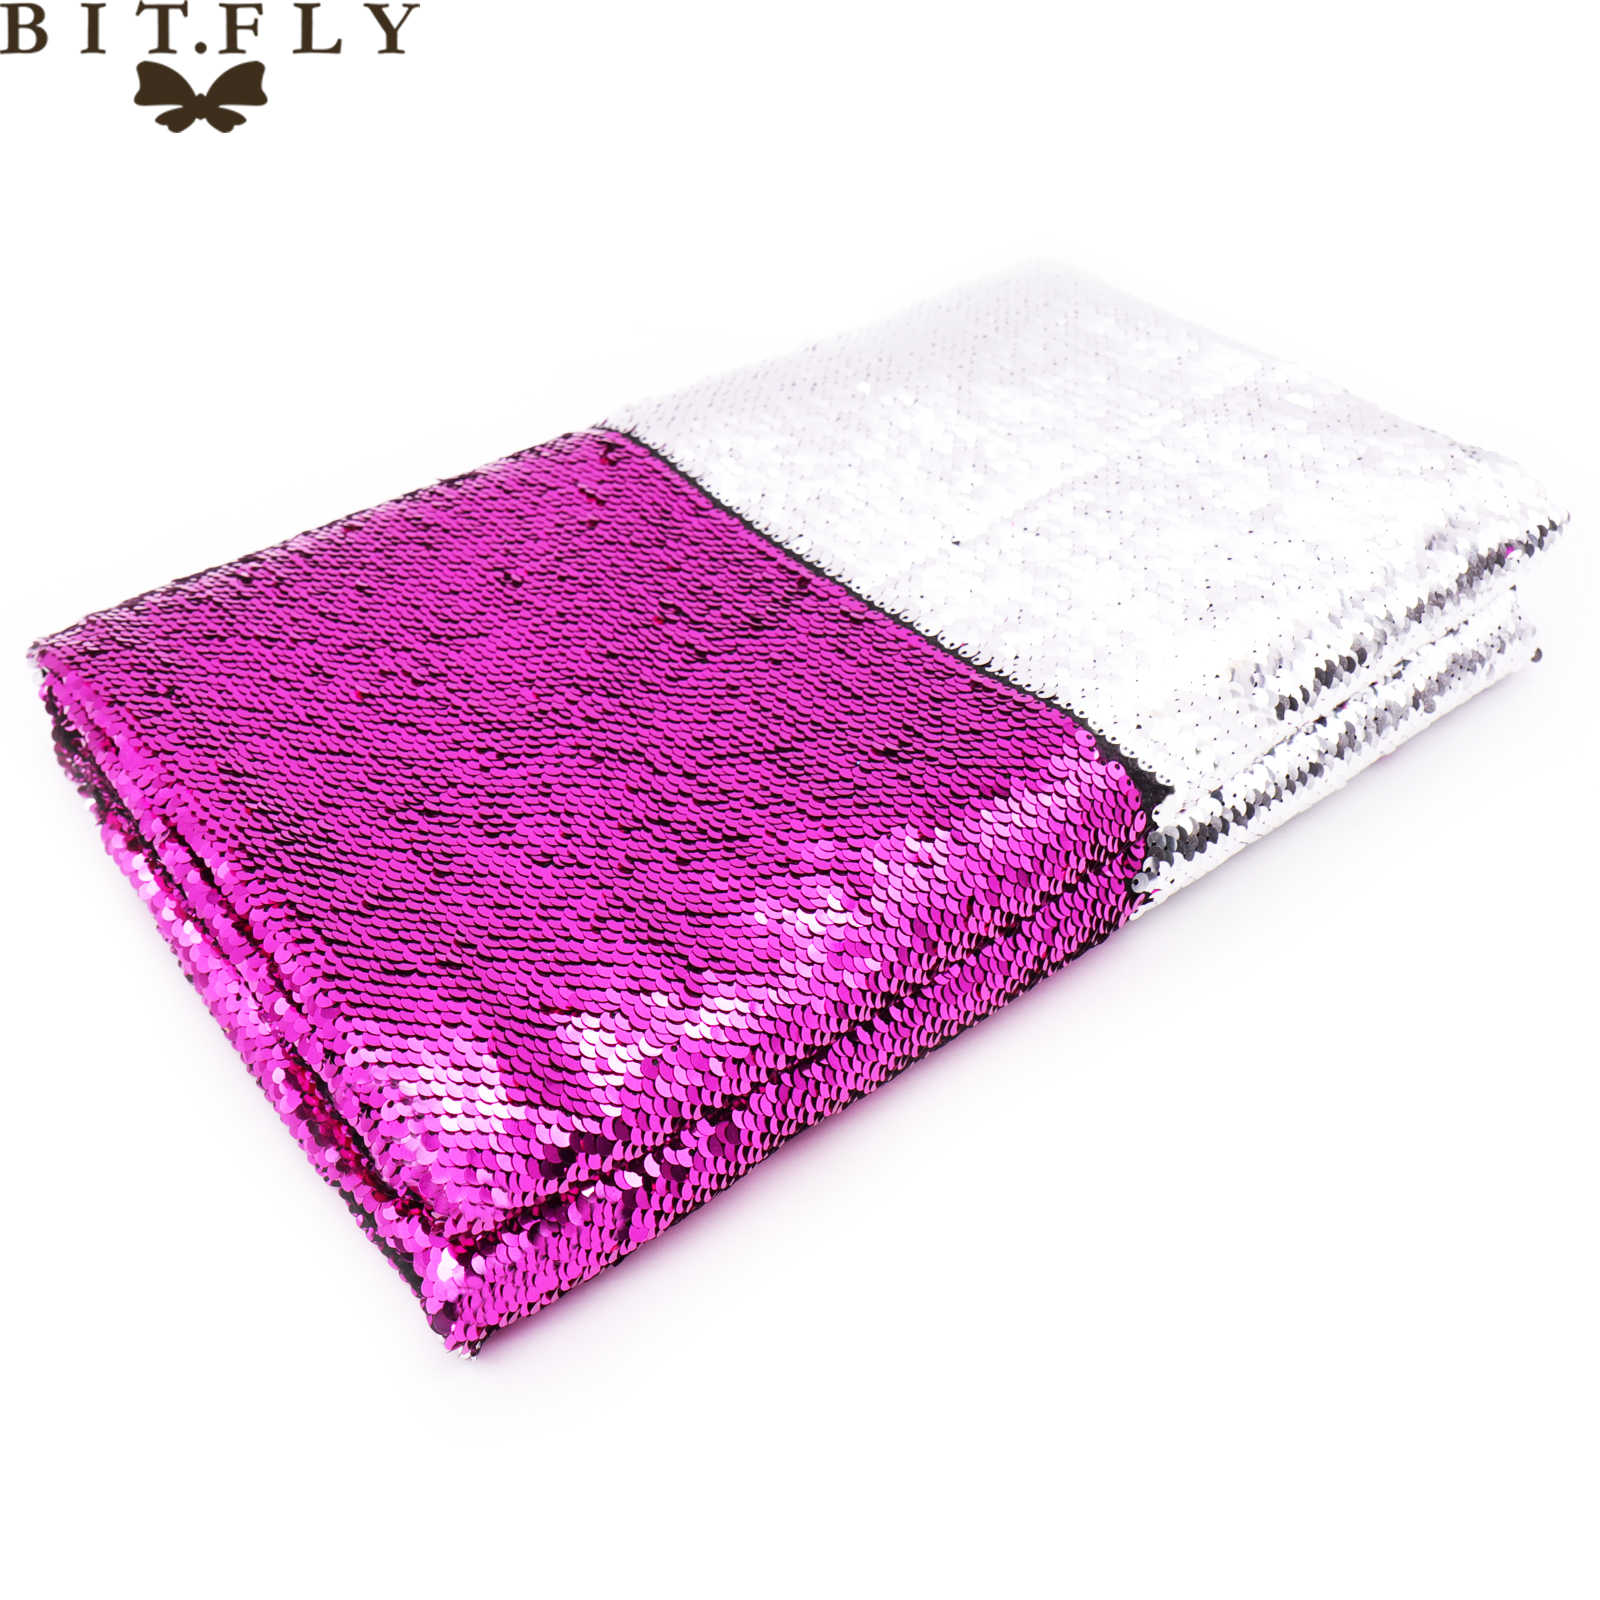 BIT.FLY 1.3x0.5m Wedding DIY Decoration Reversible Mermaid Fish Scale Sequin Fabric Paillette Fabric For Dress/Cushion/Clothes